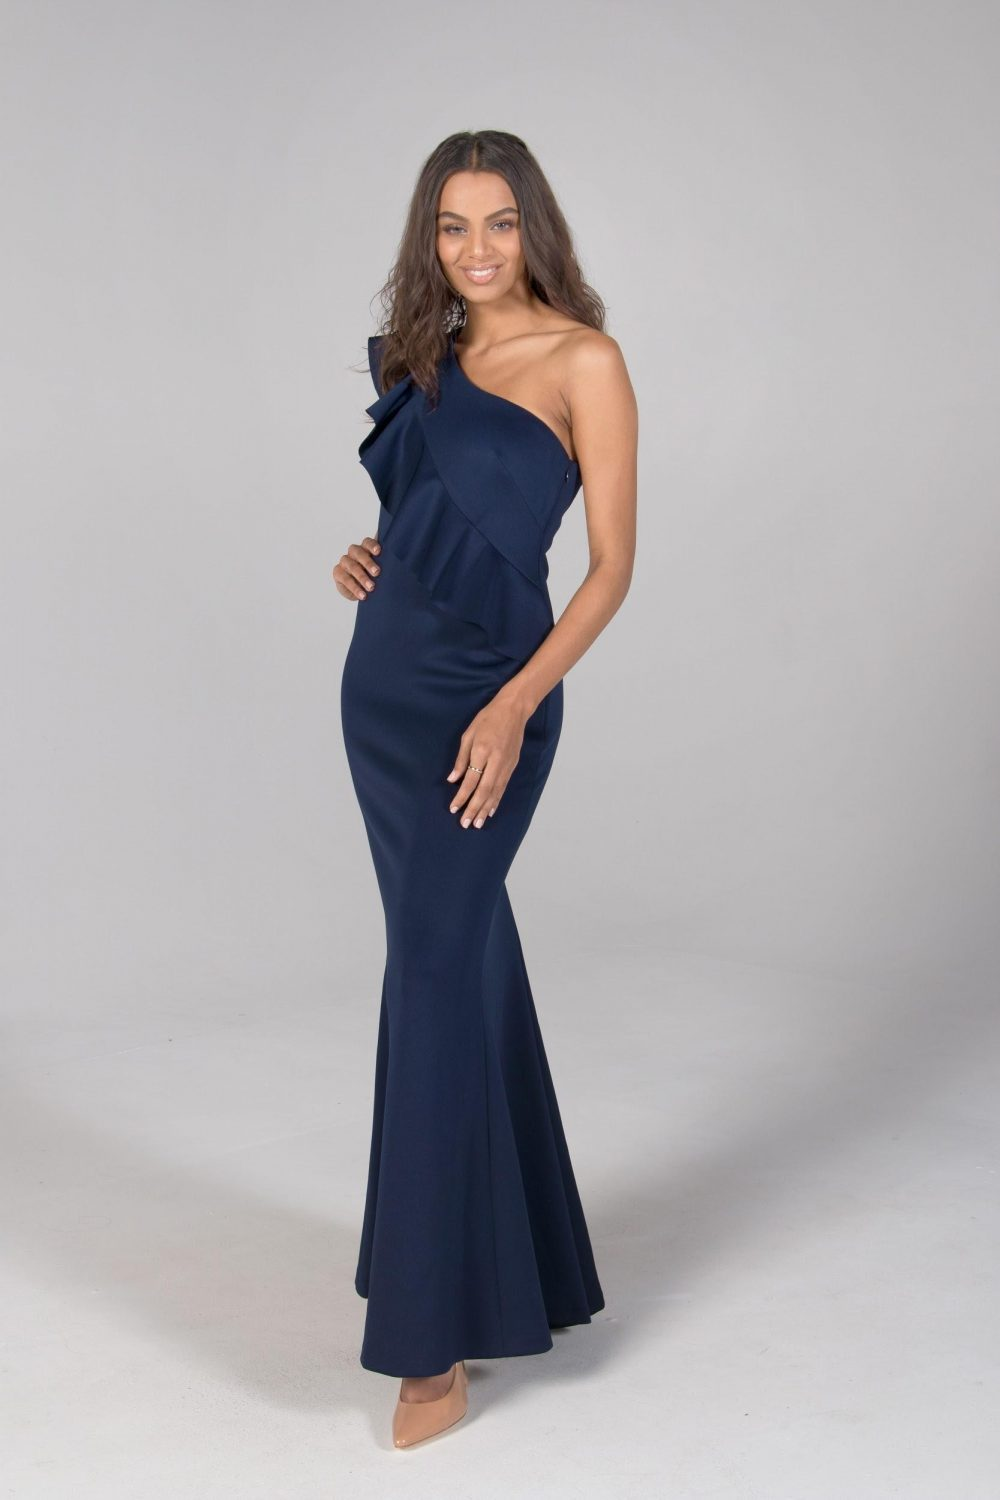 fbc290d166d6 The one shoulder trend is sophisticated and oh-so-stylish. This season show  off your shoulders with shape accentuating silhouettes. The style from  Jessica ...